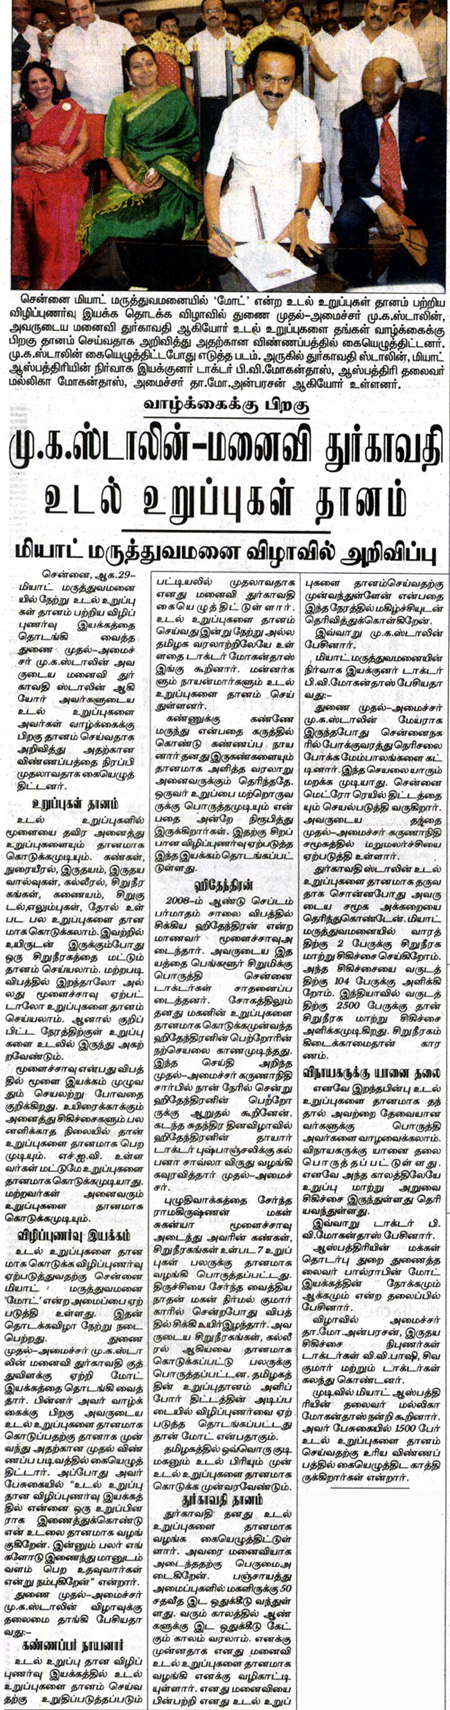 Daily Thanthi - August 29, 2009